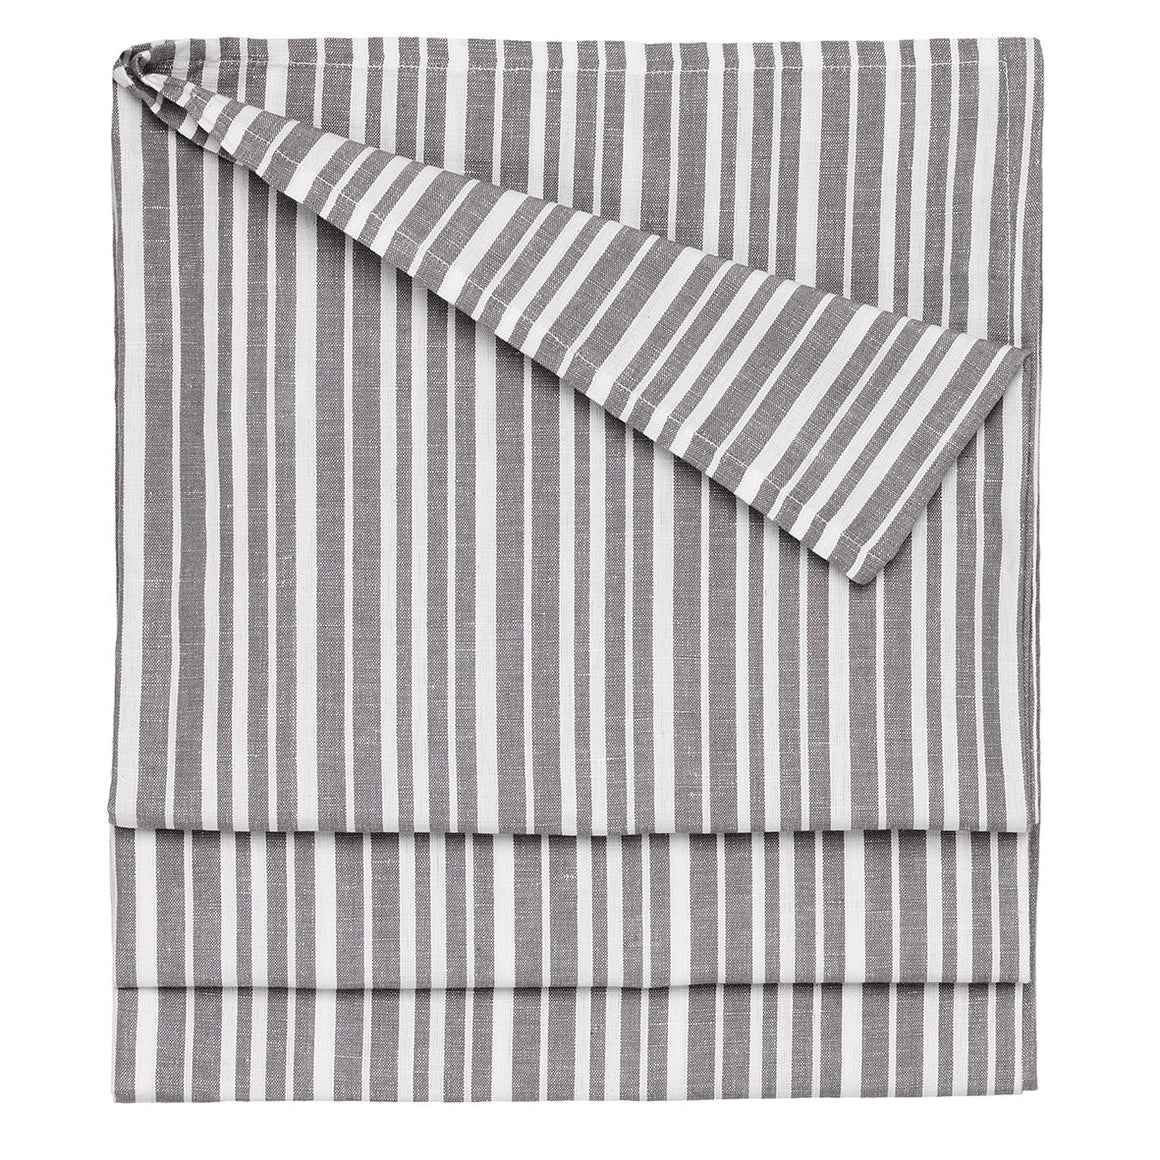 Palermo Ticking Stripe Cotton Linen Tablecloth in Stone Grey Ships from Canada (USA)